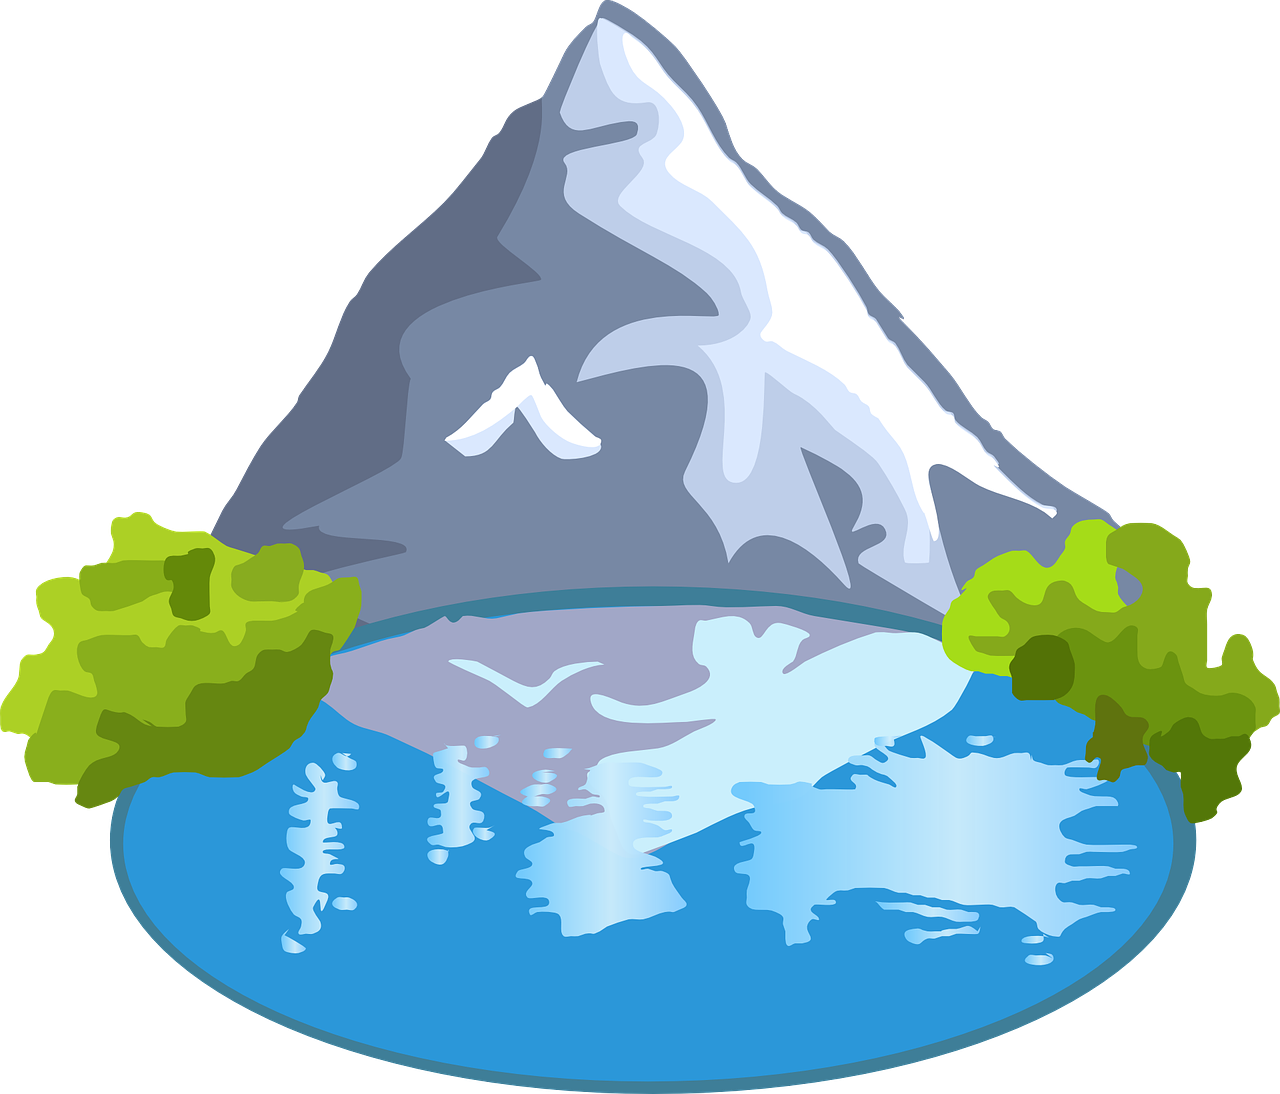 Lakes clipart clip freeuse library Lake Clipart Free | Free download best Lake Clipart Free on ... clip freeuse library